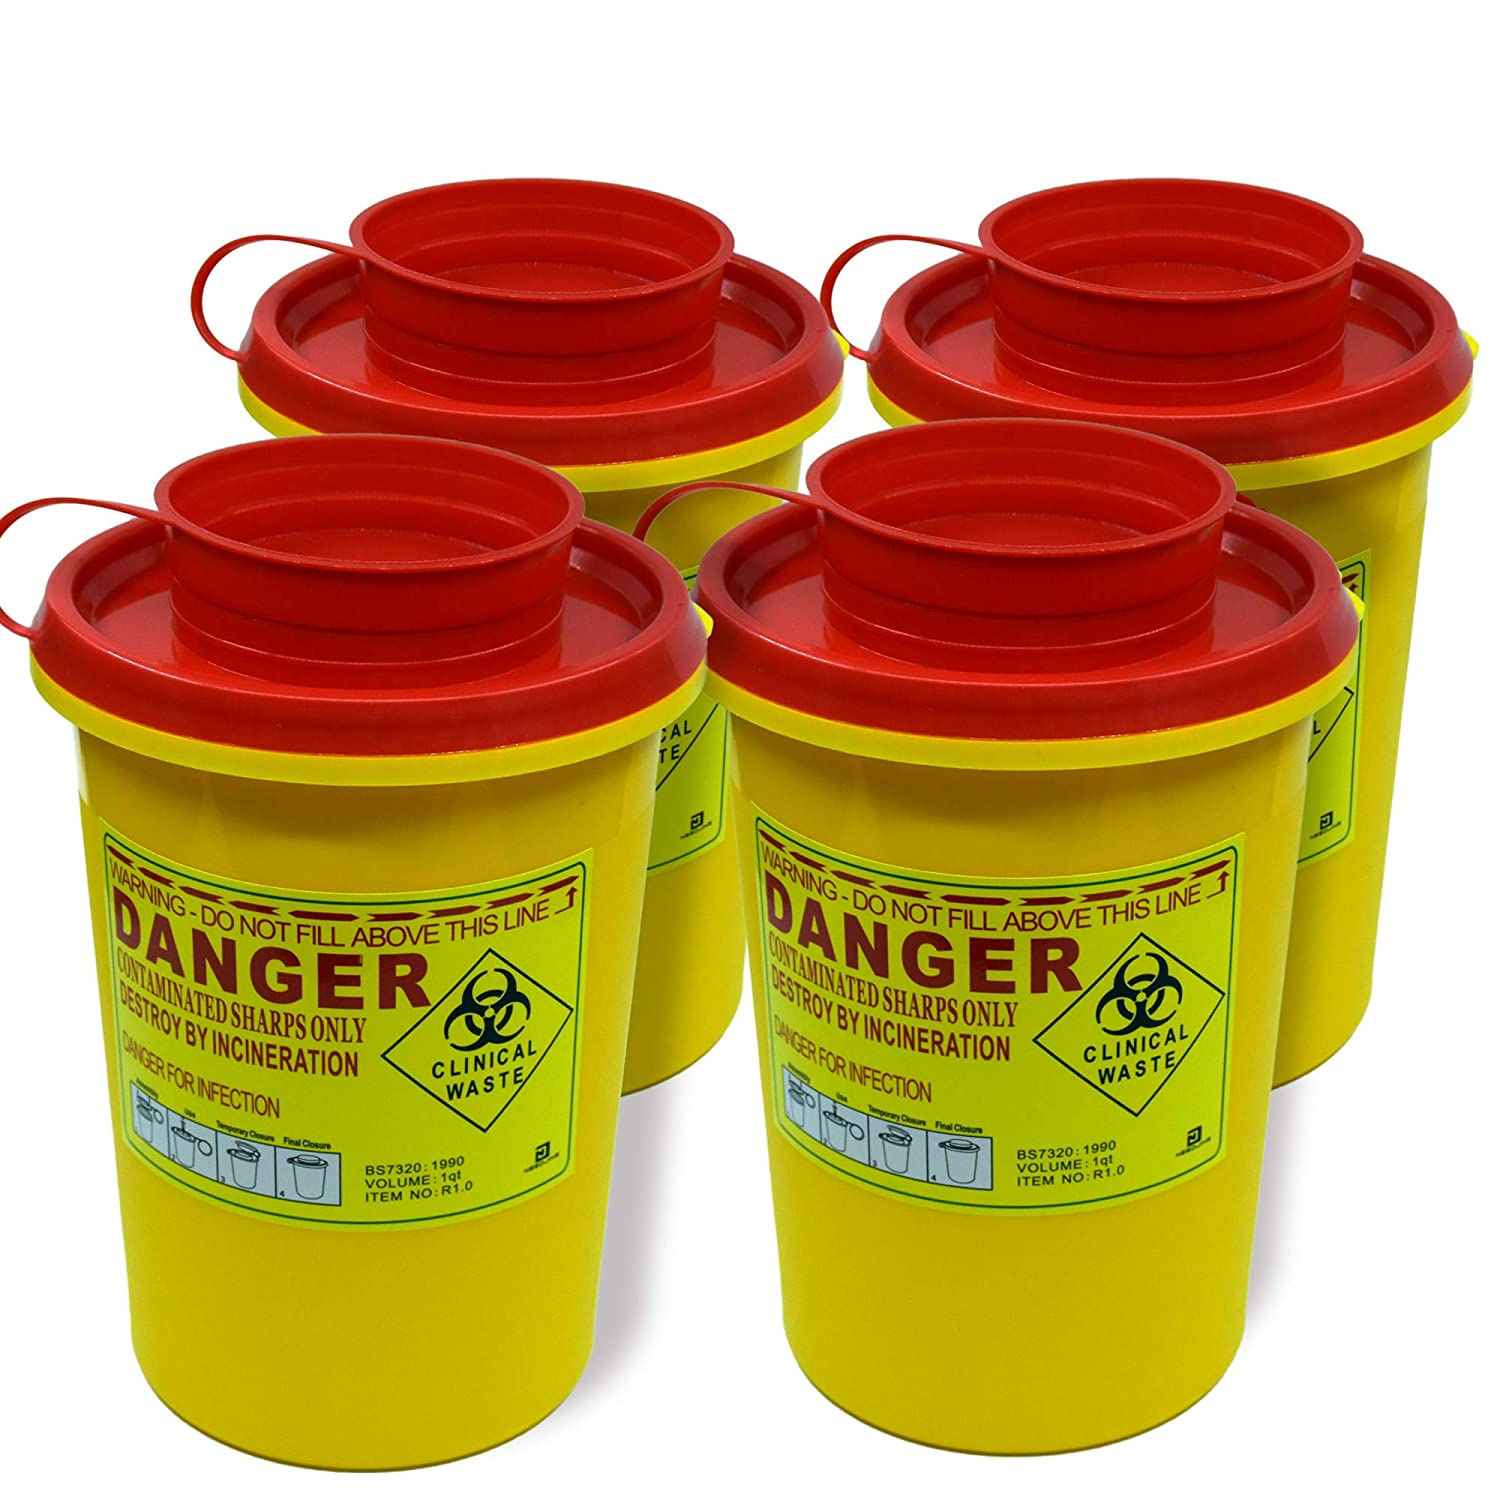 4-Pack Sharps Container(1 Quart),Sharps Needle Disposal Containers,Biohazard Containers Sharps Box Small Sharps Container Needle Disposal Box: Industrial & Scientific